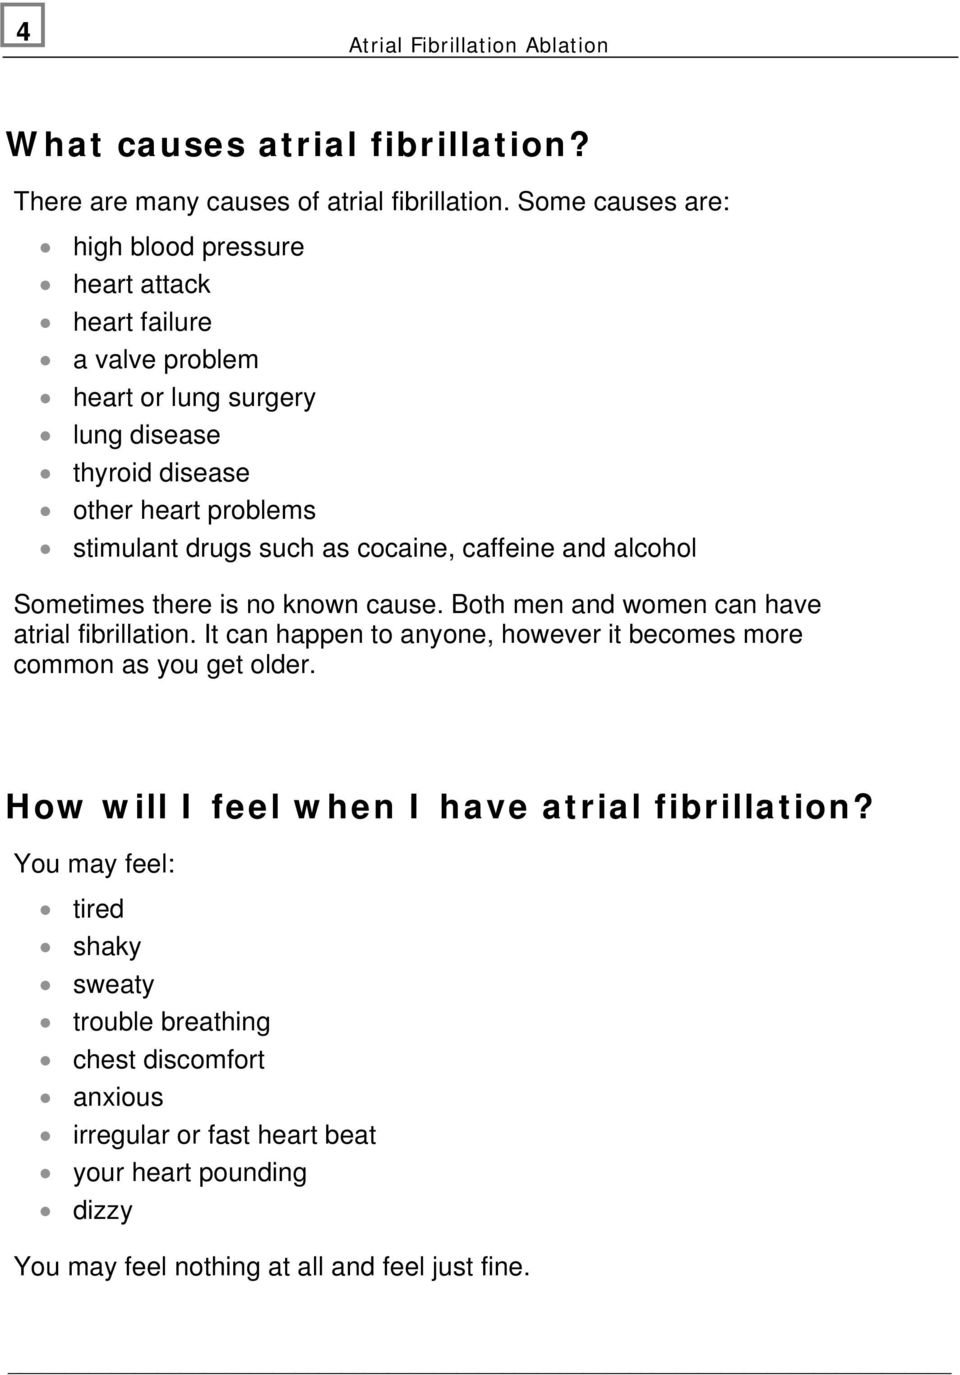 cocaine, caffeine and alcohol Sometimes there is no known cause. Both men and women can have atrial fibrillation.